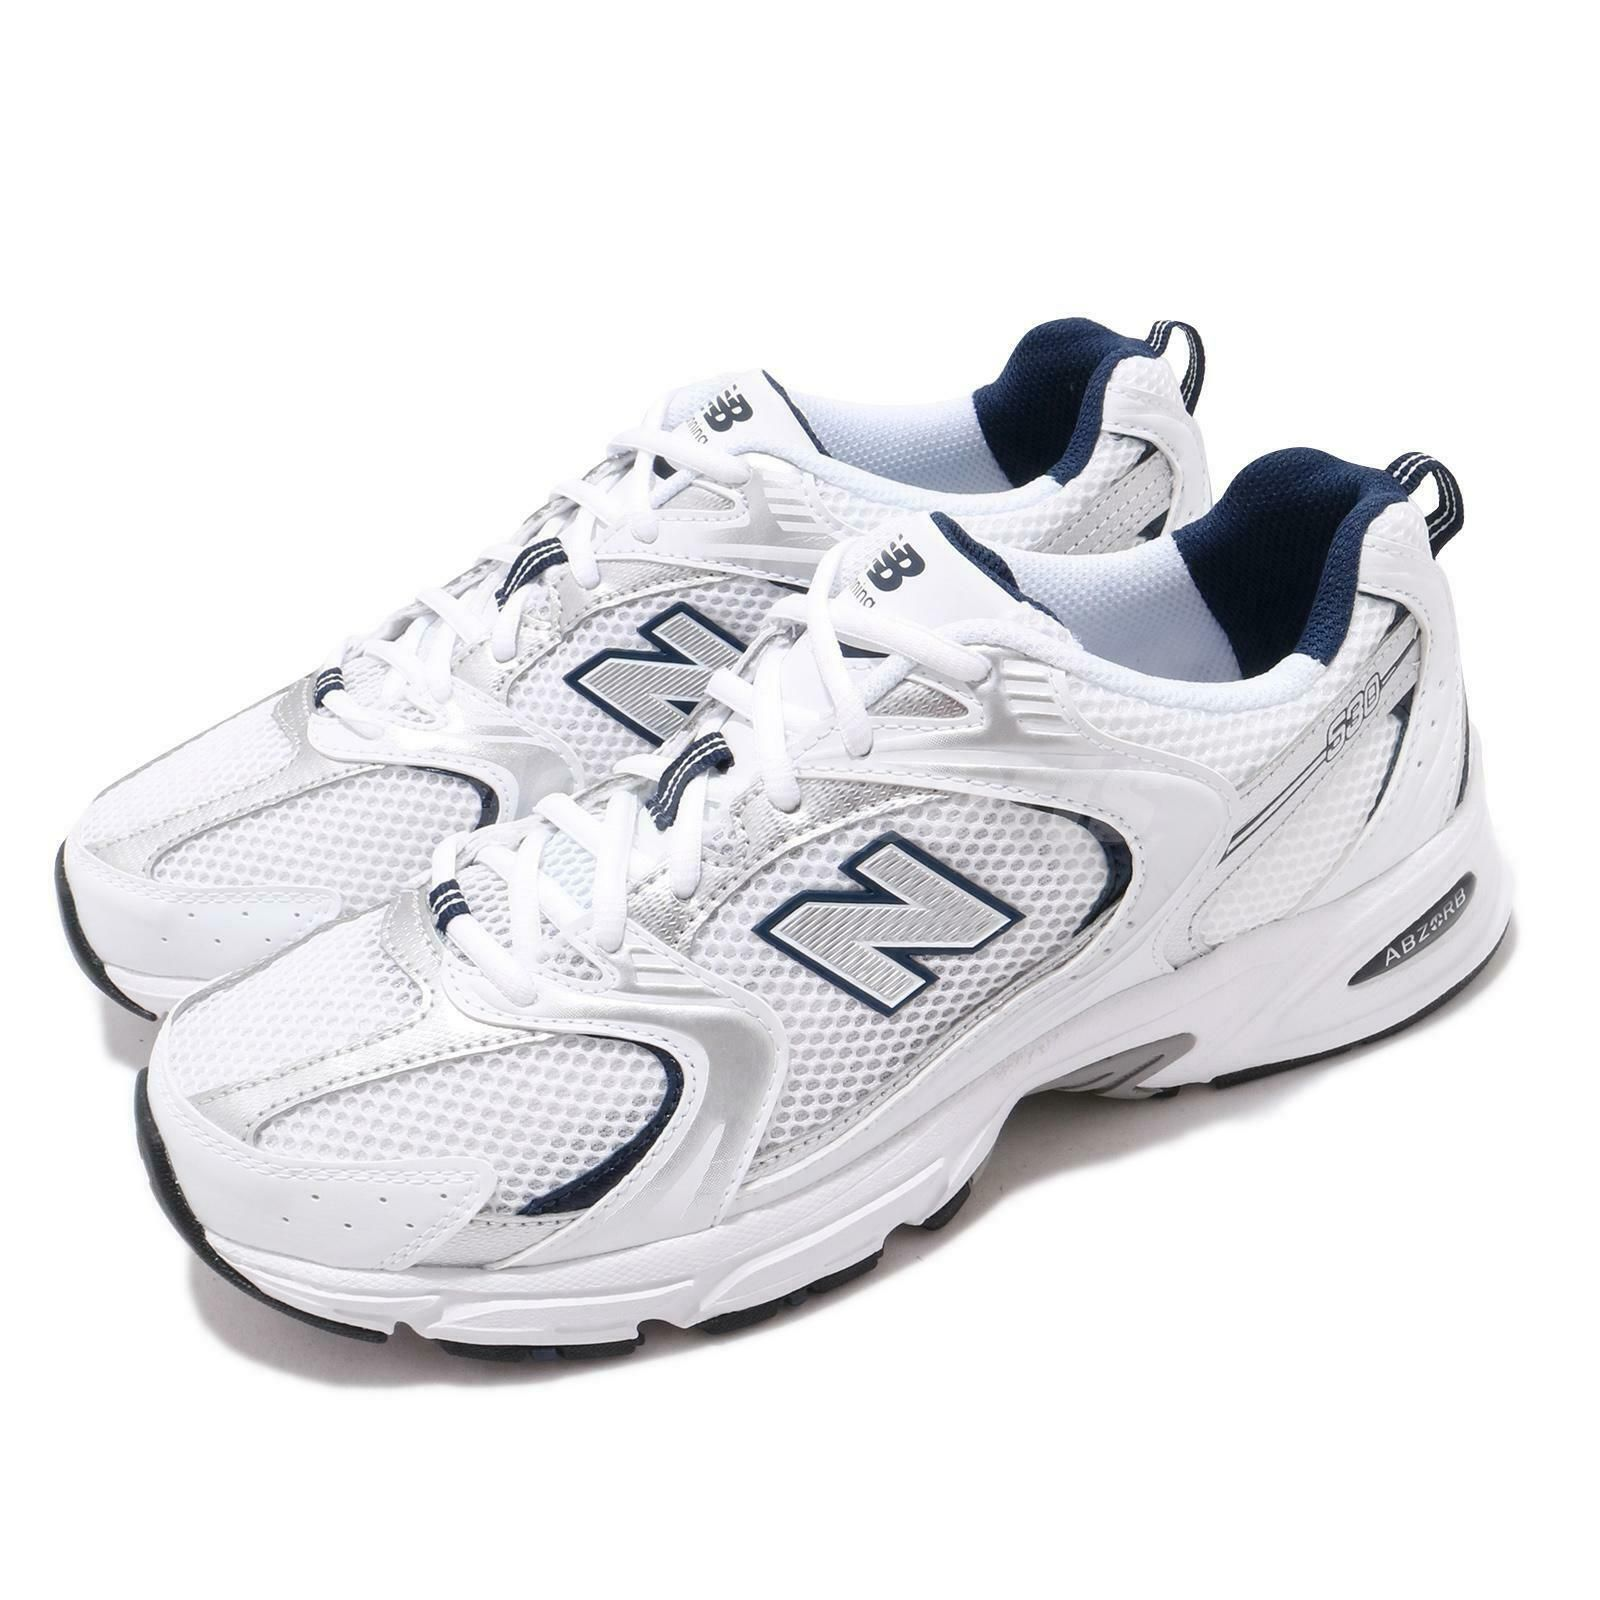 Details about New Balance 530 V2 Retro White Silver Navy Men ...